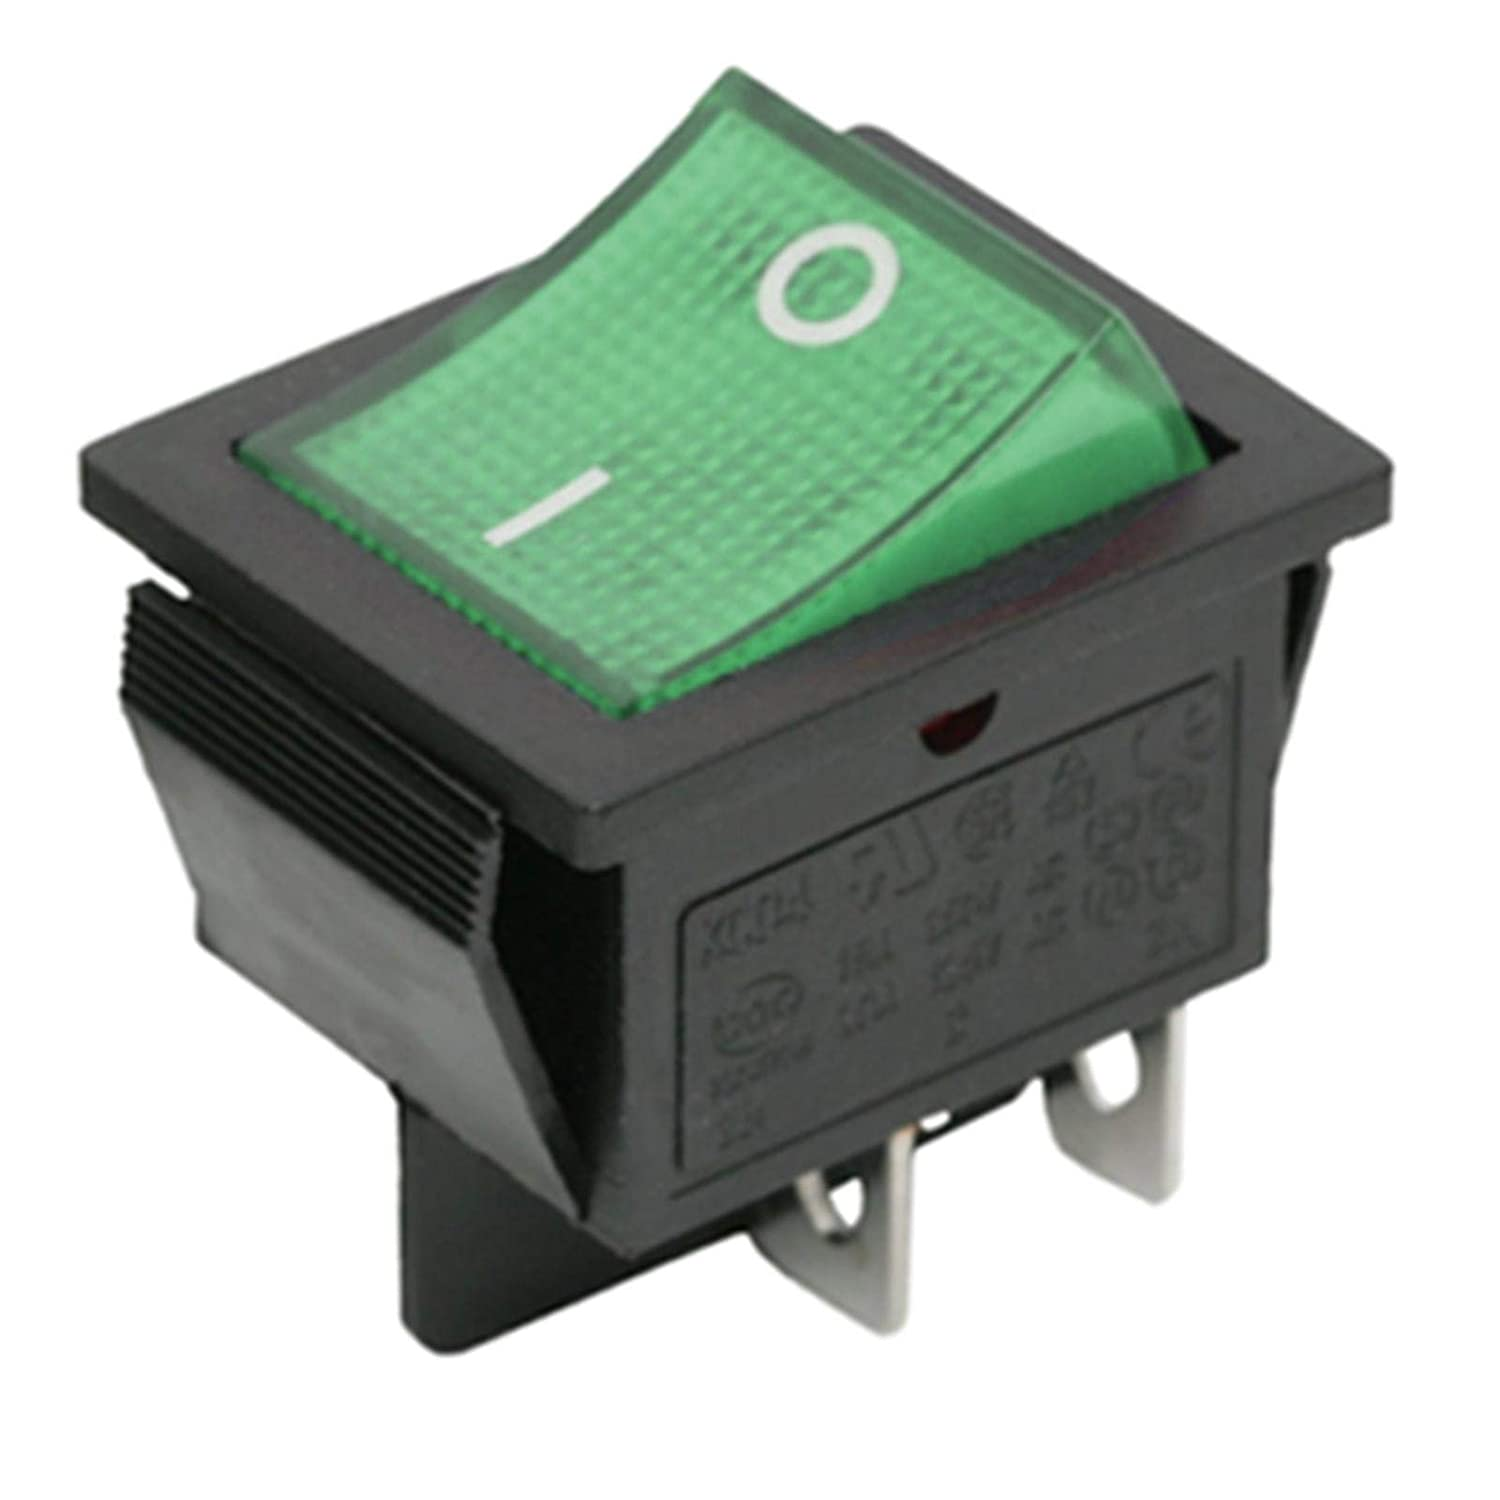 Green Illuminated DPST Latching Rocker Switch On-Off Snap In 22x30mm 4pin Daier